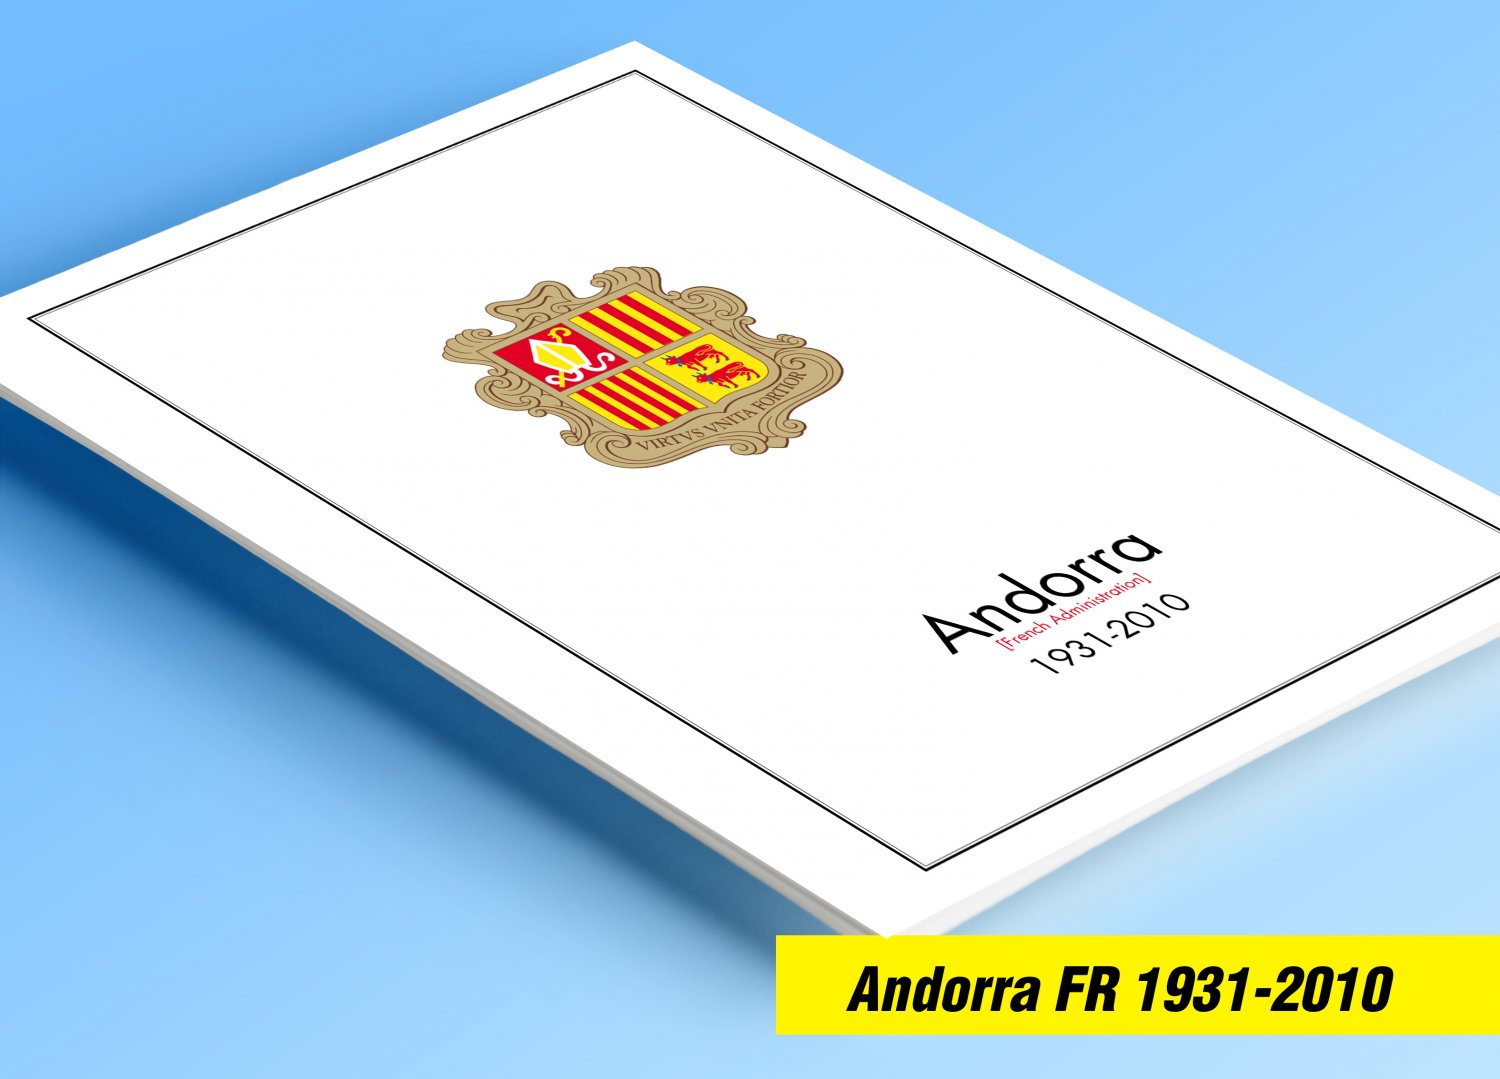 ANDORRA [FRENCH ADMINISTRATION] 1931-2010 COLOR PRINTED STAMP ALBUM PAGES  (79 illustrated pages)